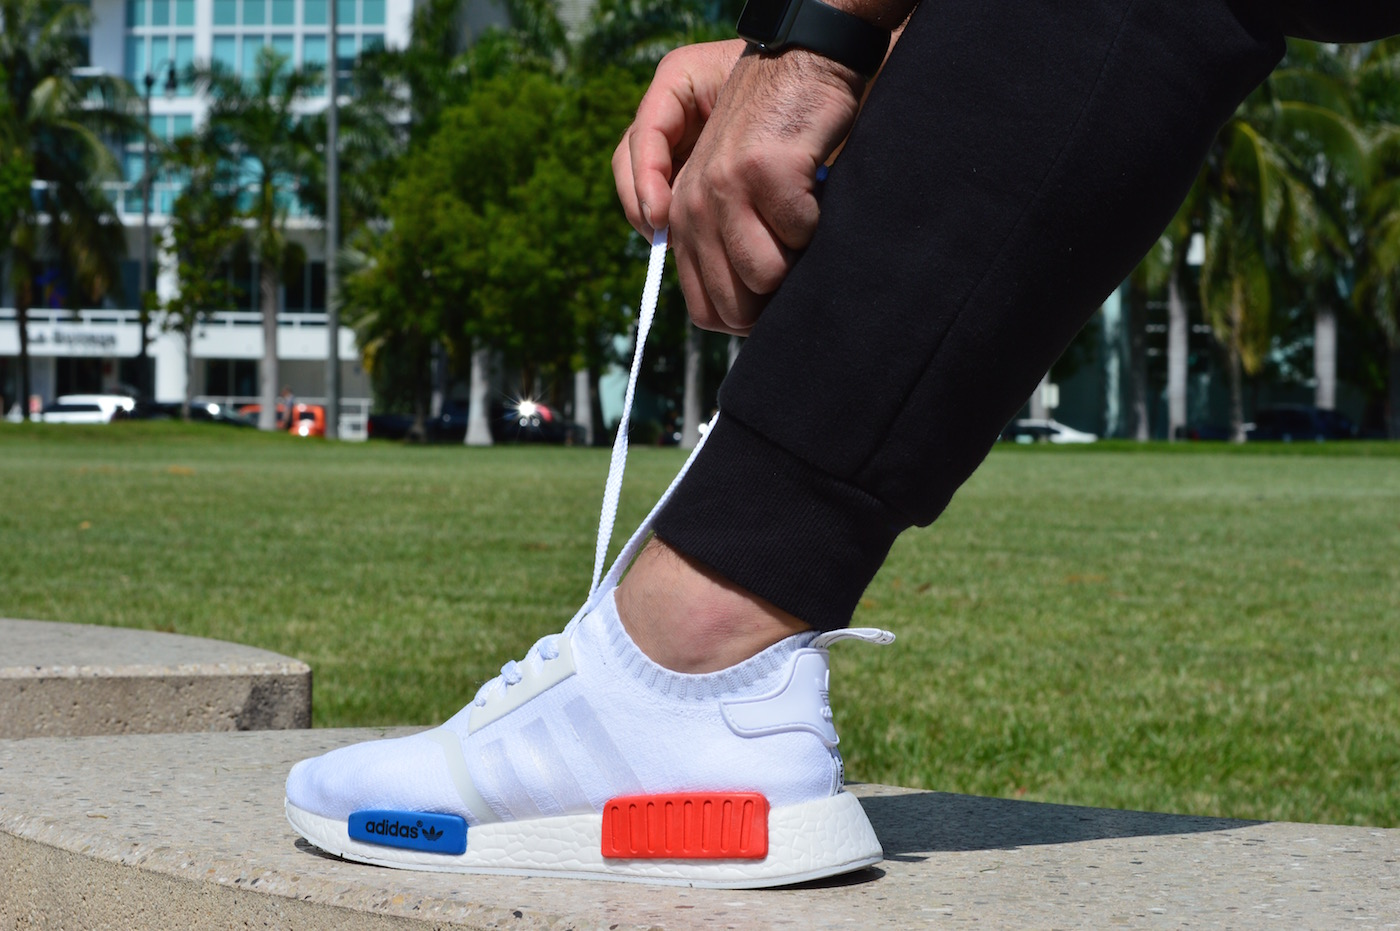 adidas NMD R1 Primeknit On Feet Shoelaces White Red Blue